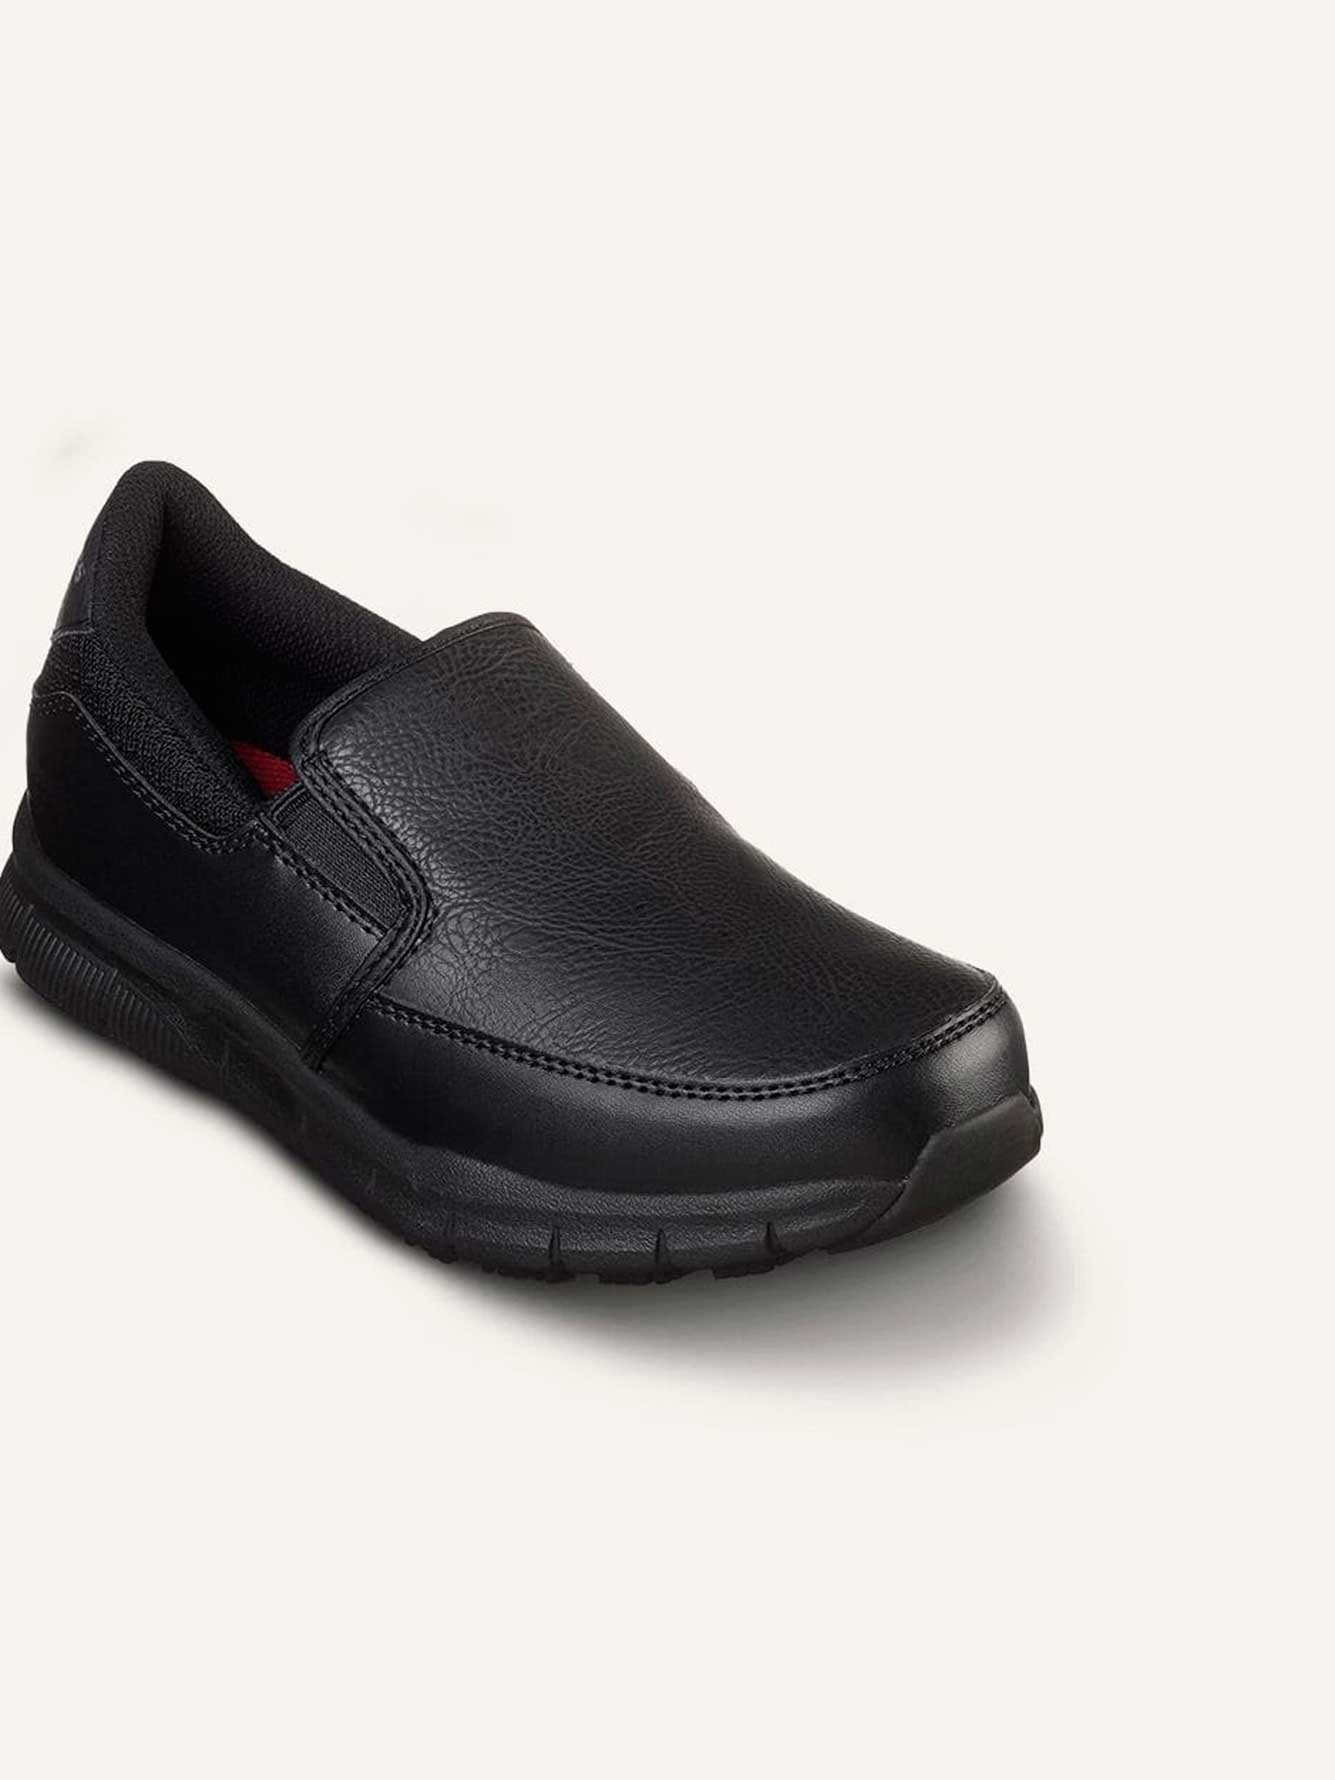 Skechers Relaxed Fit, Nampa Annod Sr - Wide Width Sneakers